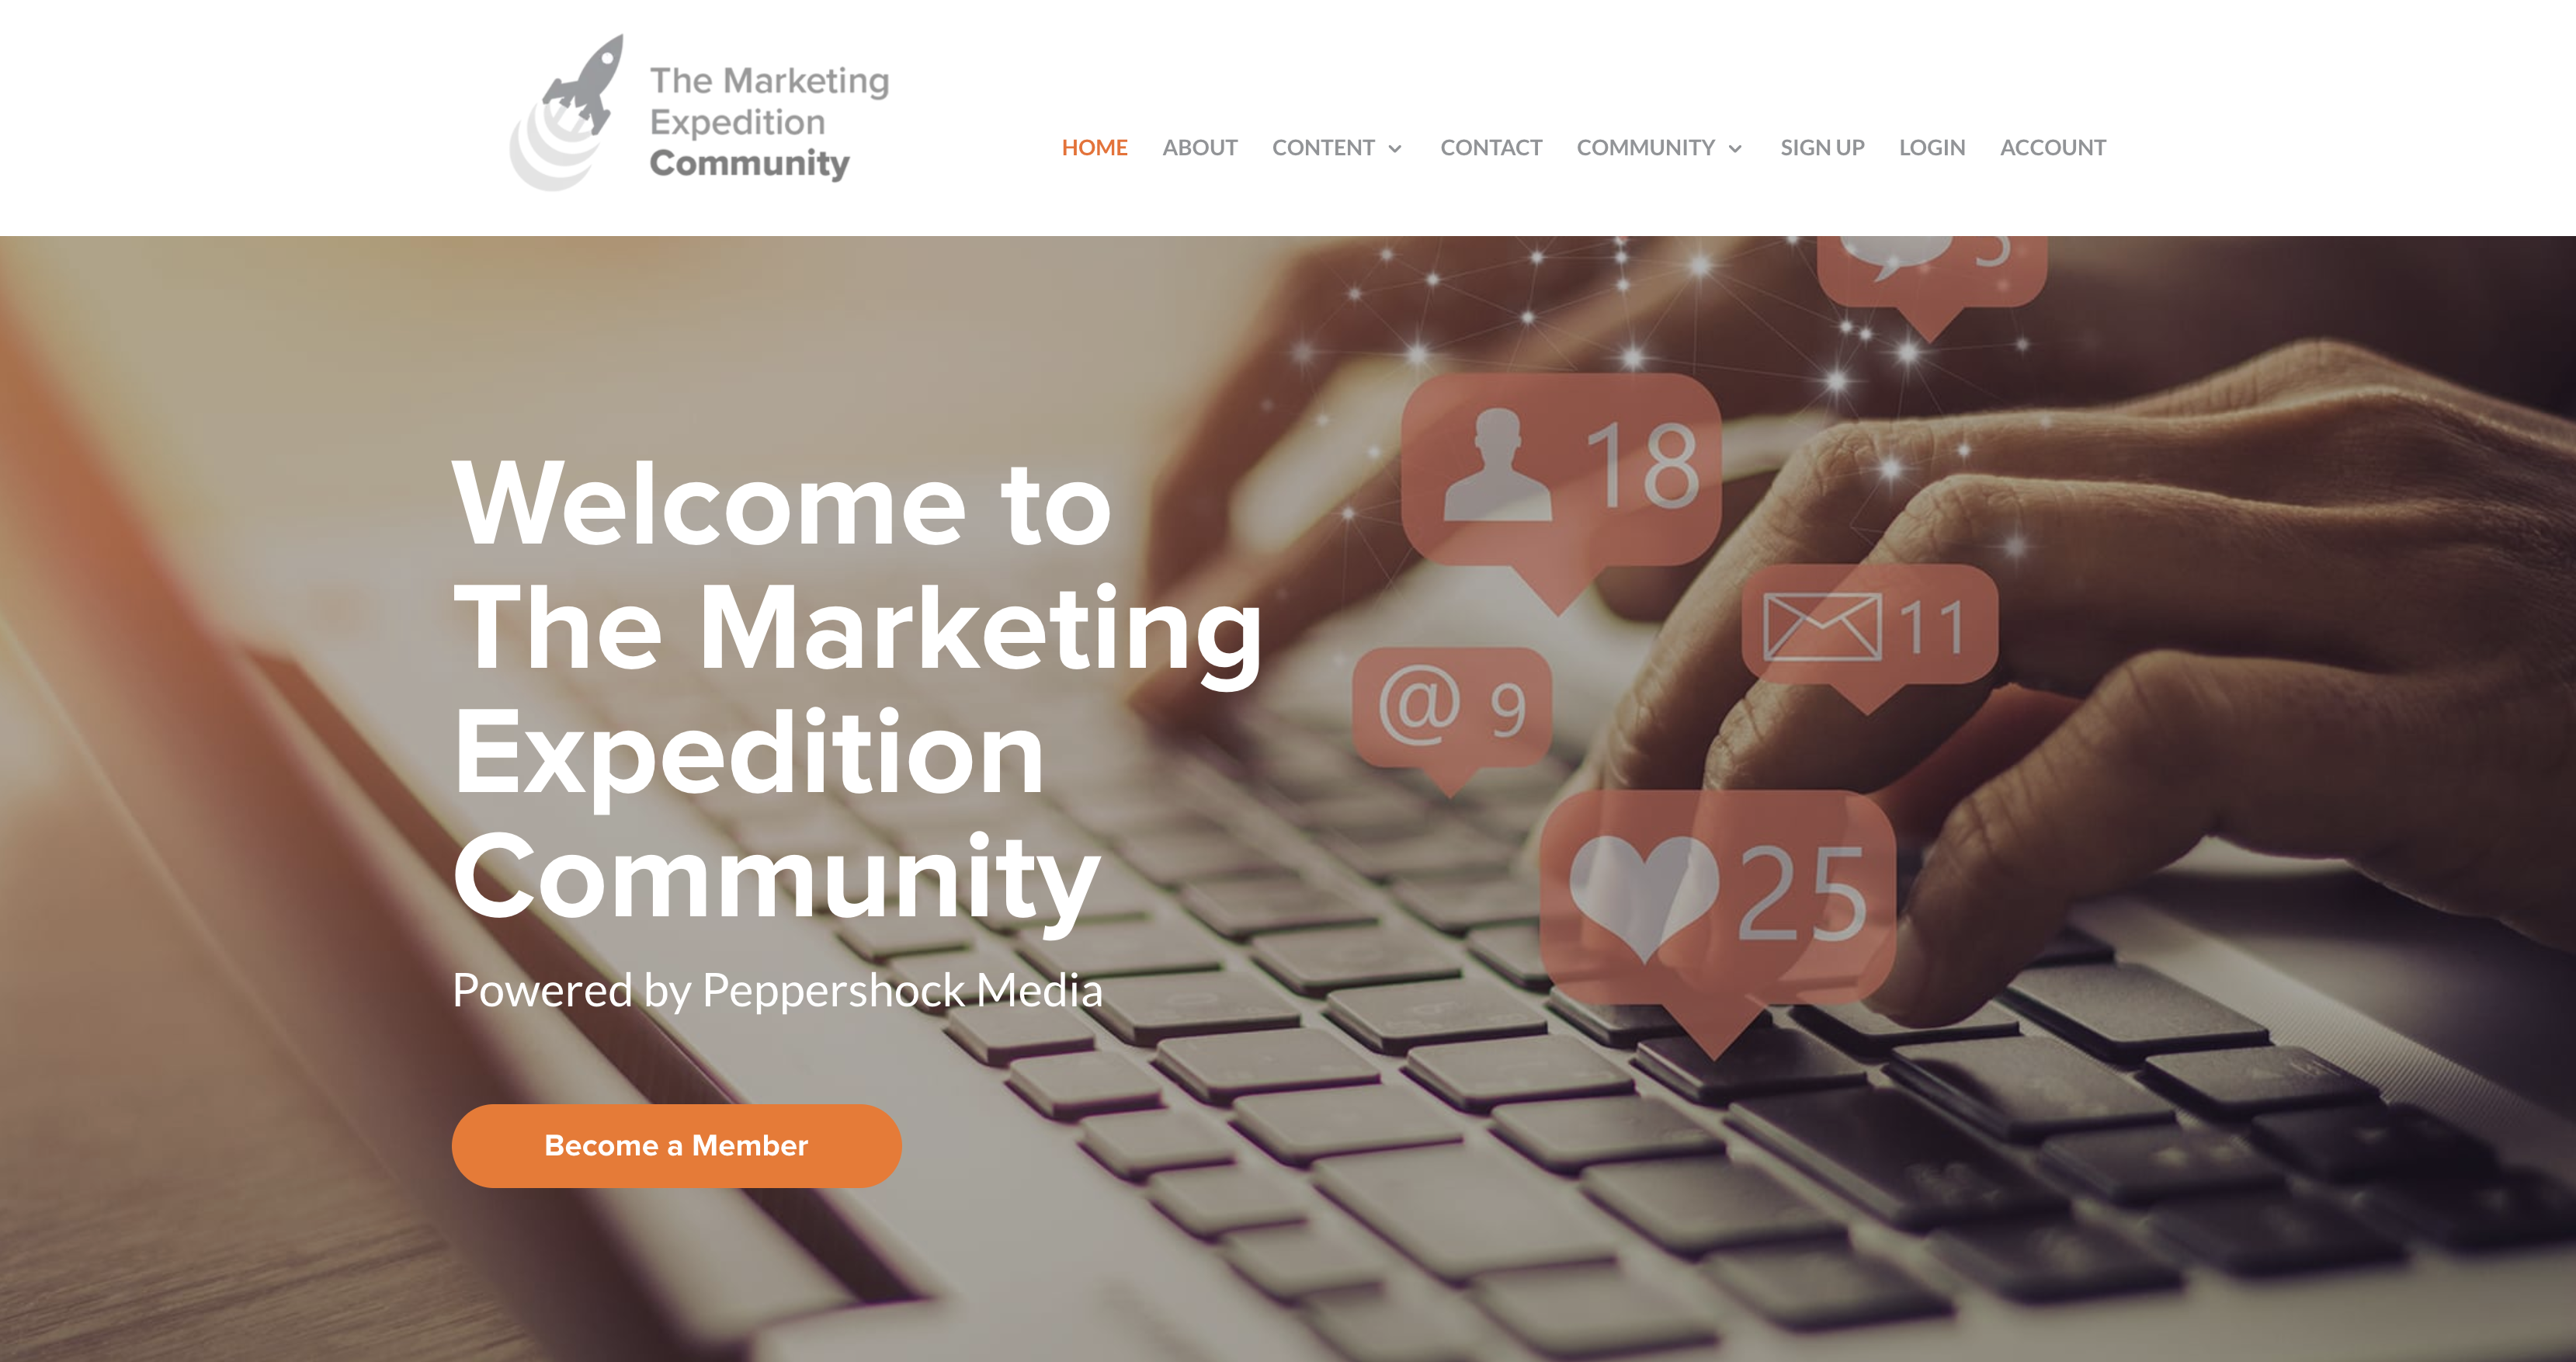 The Marketing Expedition Homepage